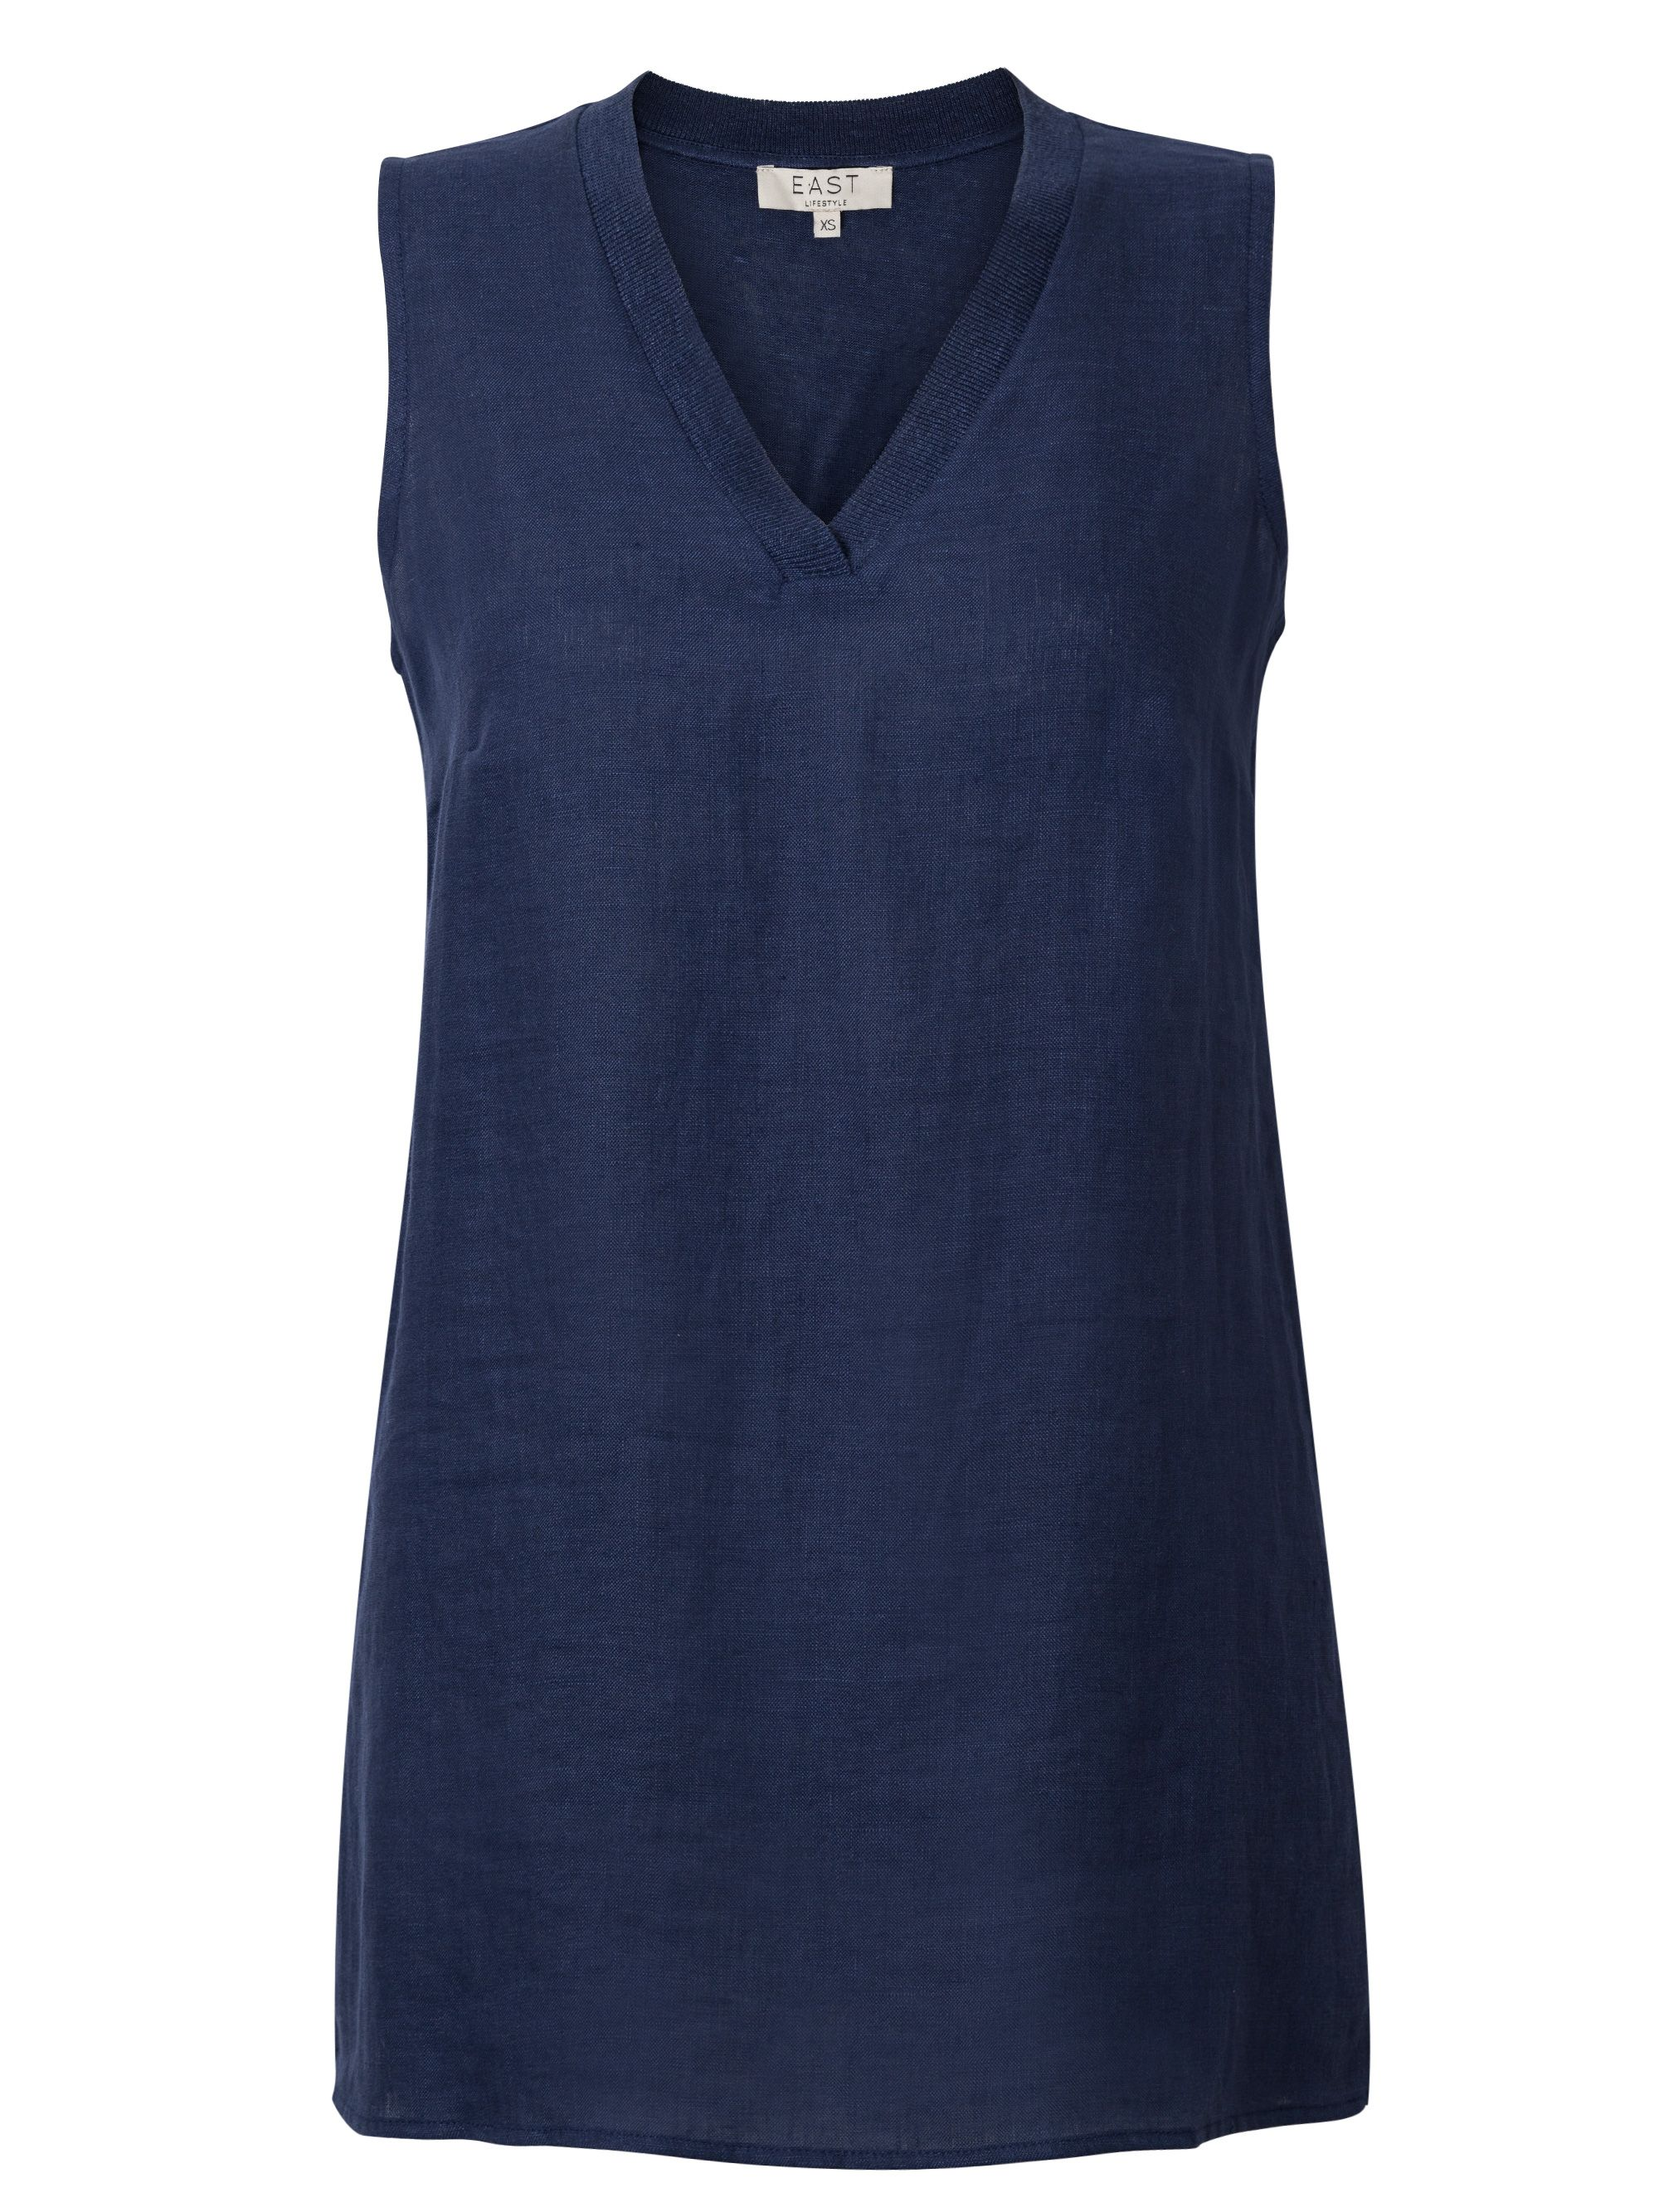 East V Neck Sleeveless Jersey, Ink